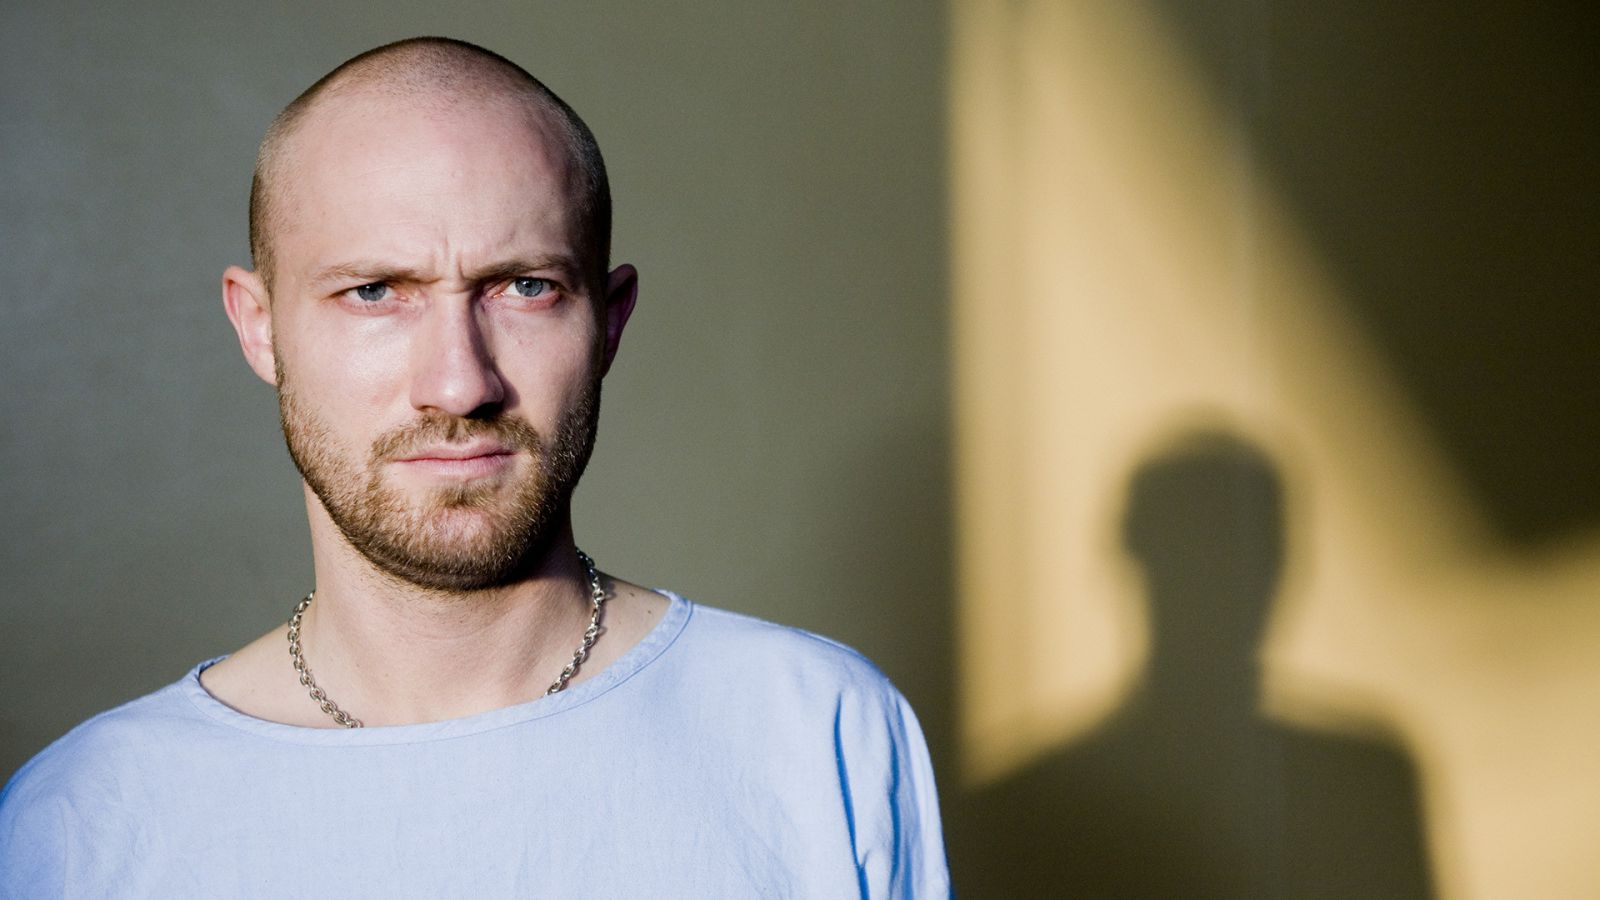 Paul Kalkbrenner Balaton Sound